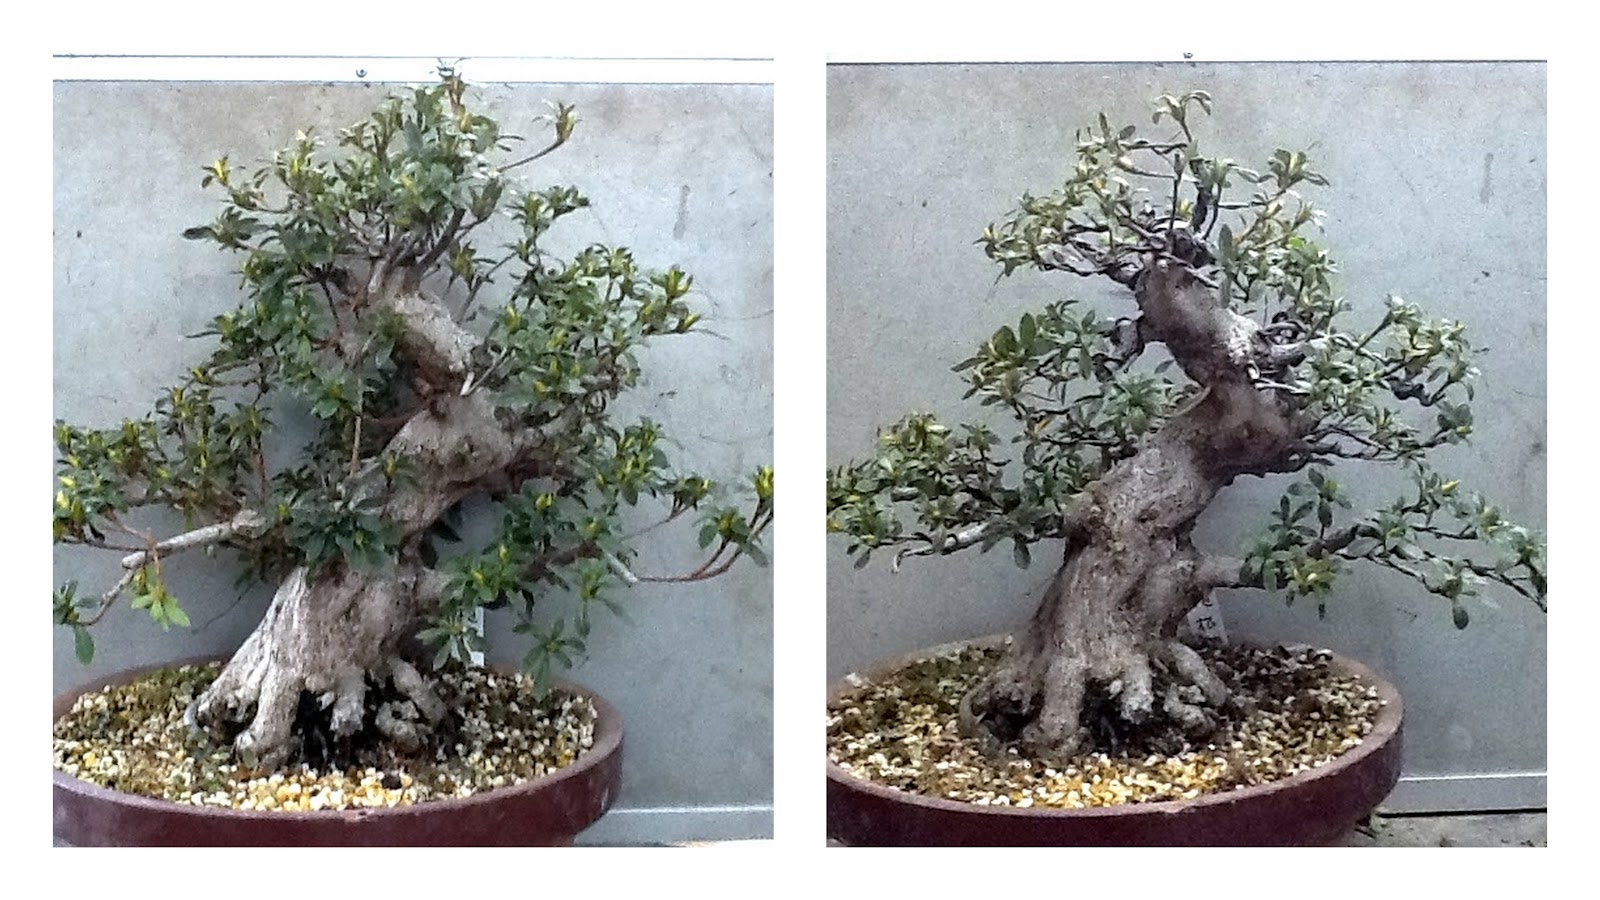 I Fear Change Saruyama Bonsai Peter Warren Wiring Lesson Ue San Brought It Back And Said Sort Out A Year Since Was Planted From Raw Stock Time For The First